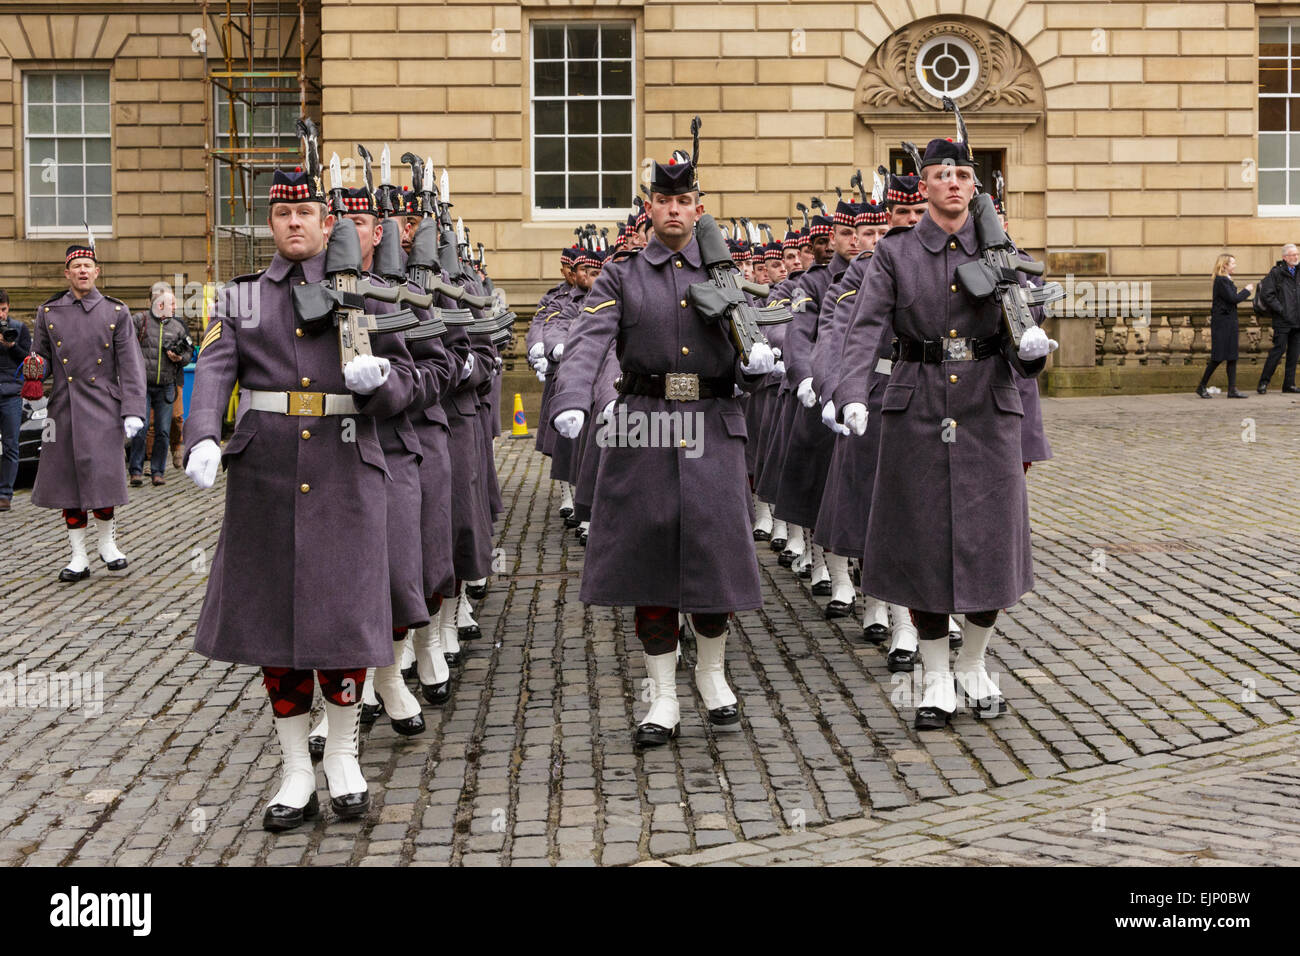 Edinburgh, Scotland, UK. 30th Mar, 2015. The Right Honourable Lord Lyon King of Arms has summoned a new UK Parliament - Stock Image